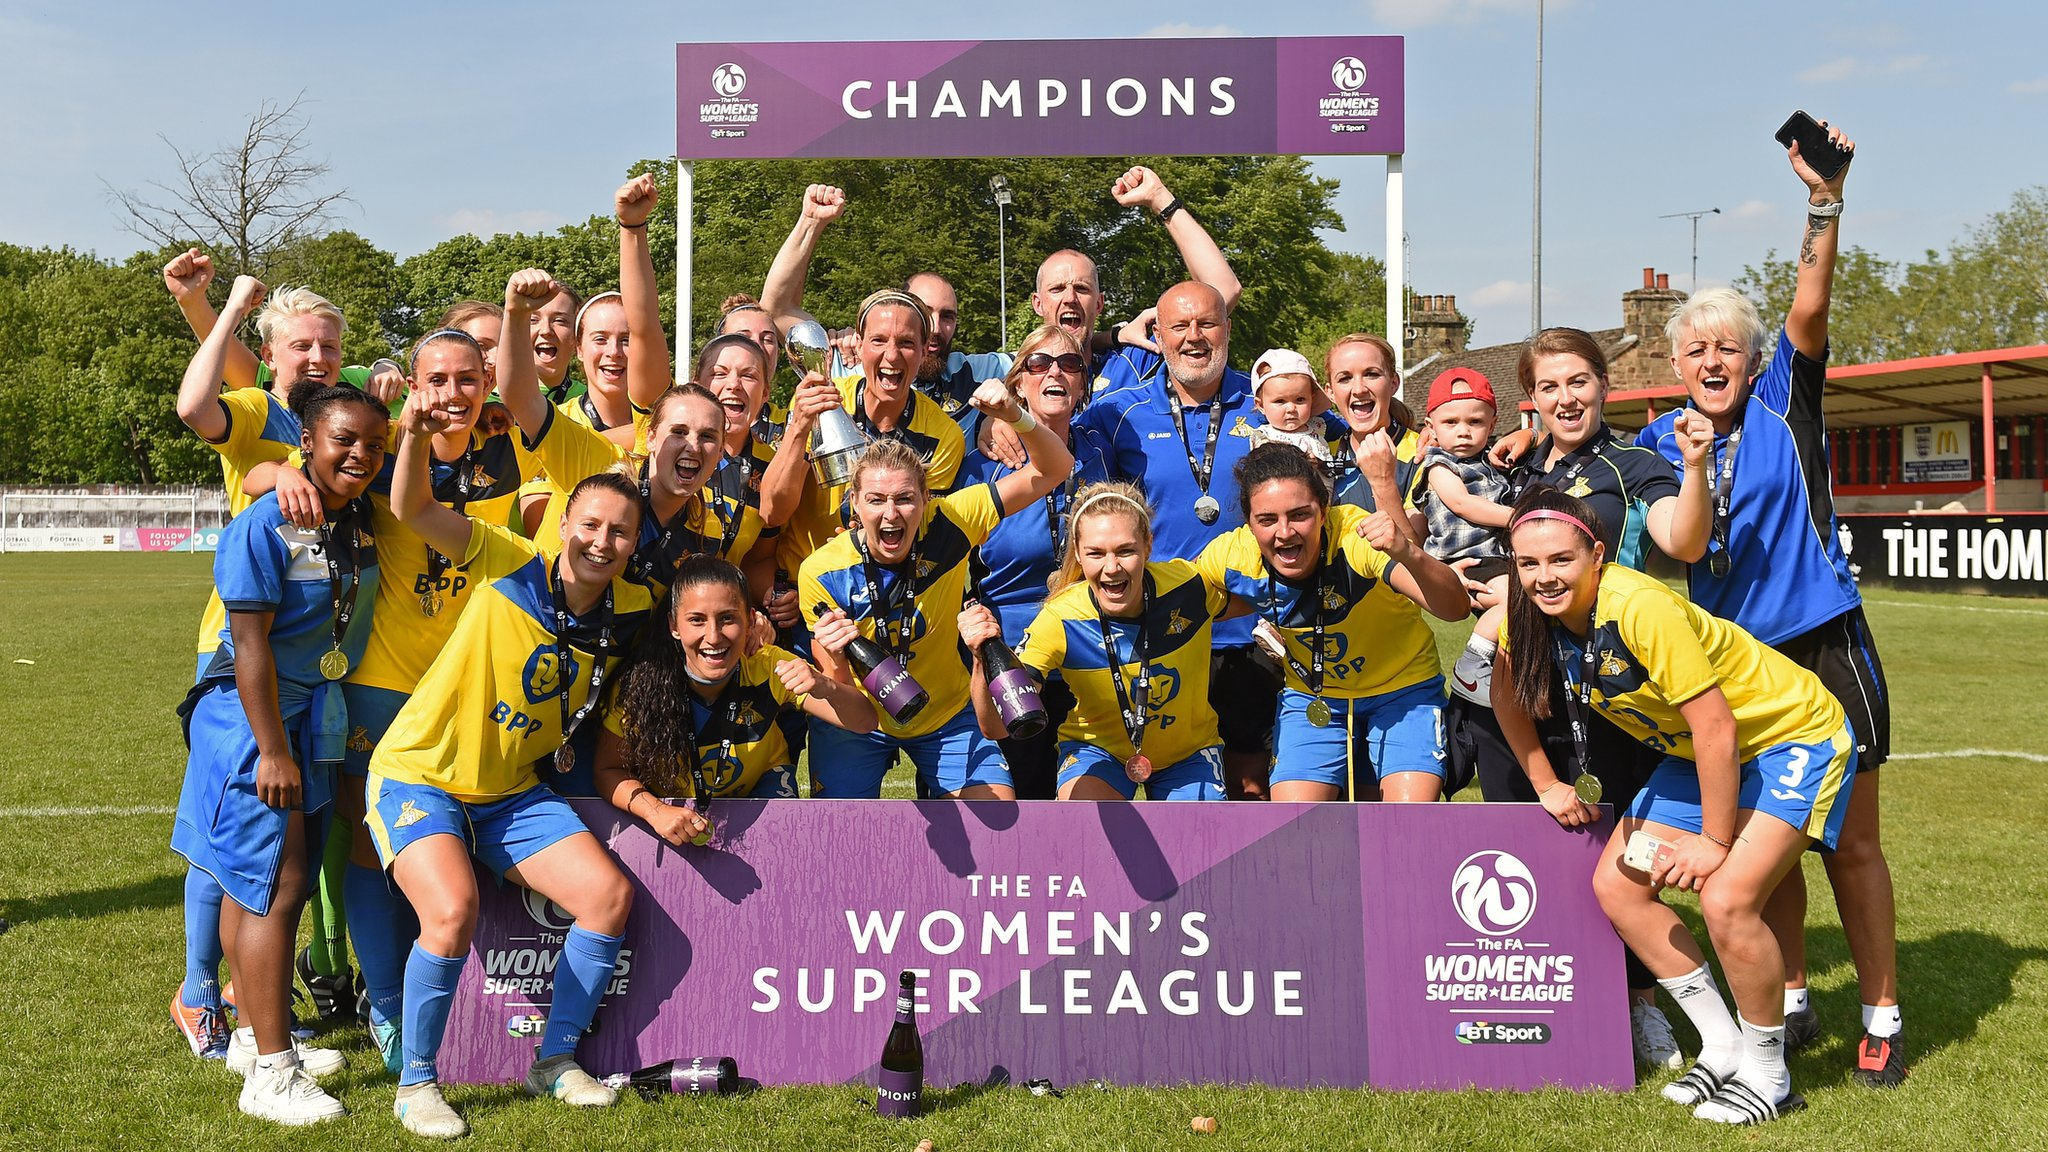 Doncaster Rovers Belles: WSL 2 champions discuss integration into Club Doncaster